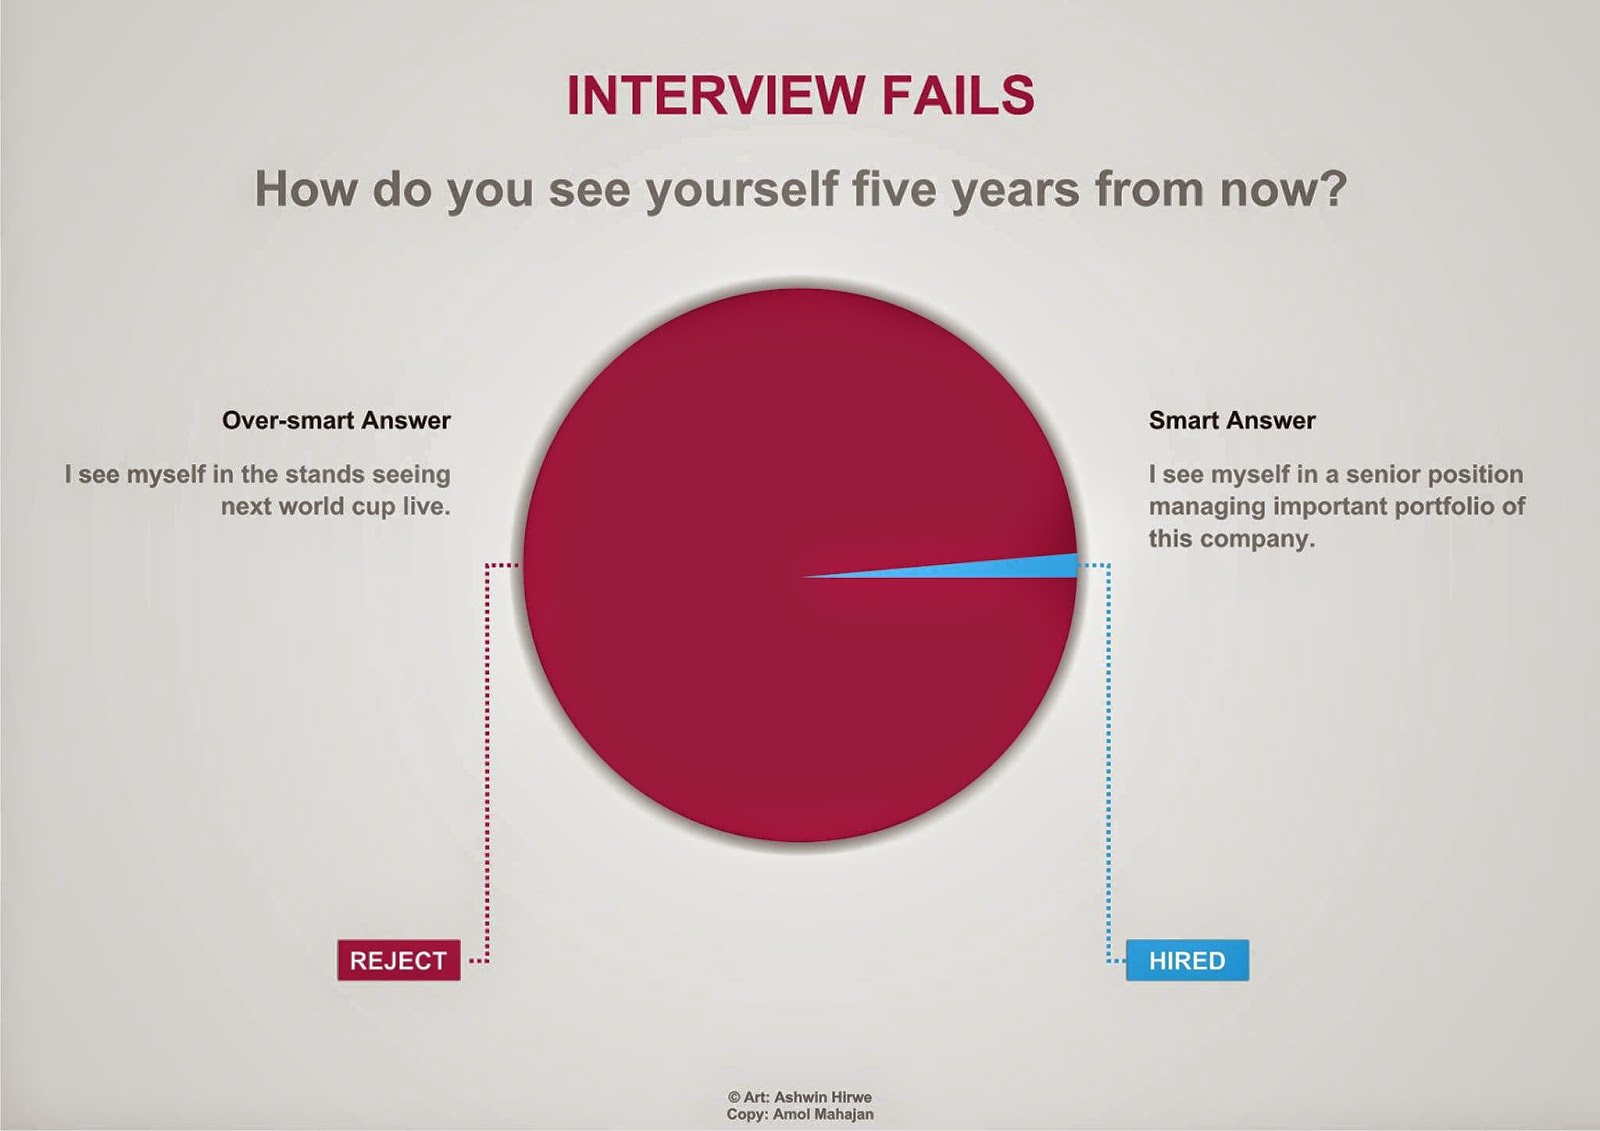 some interview related basic questions where do you see yourself five years from now